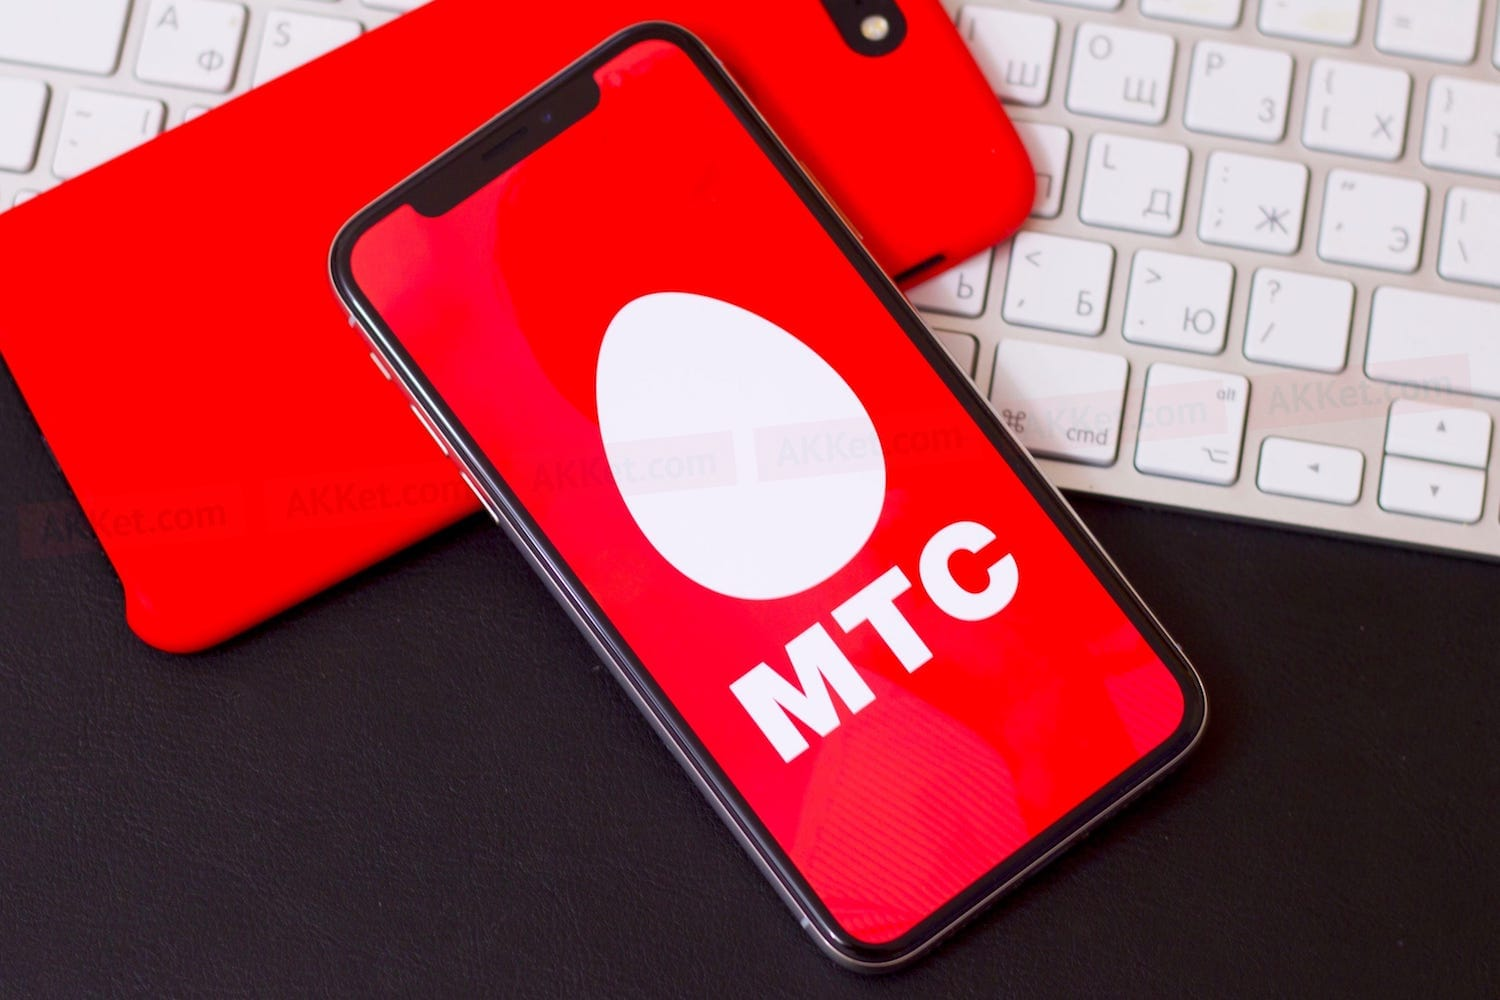 MTS launches Wi-Fi Calling in St. Petersburg and the suburbs